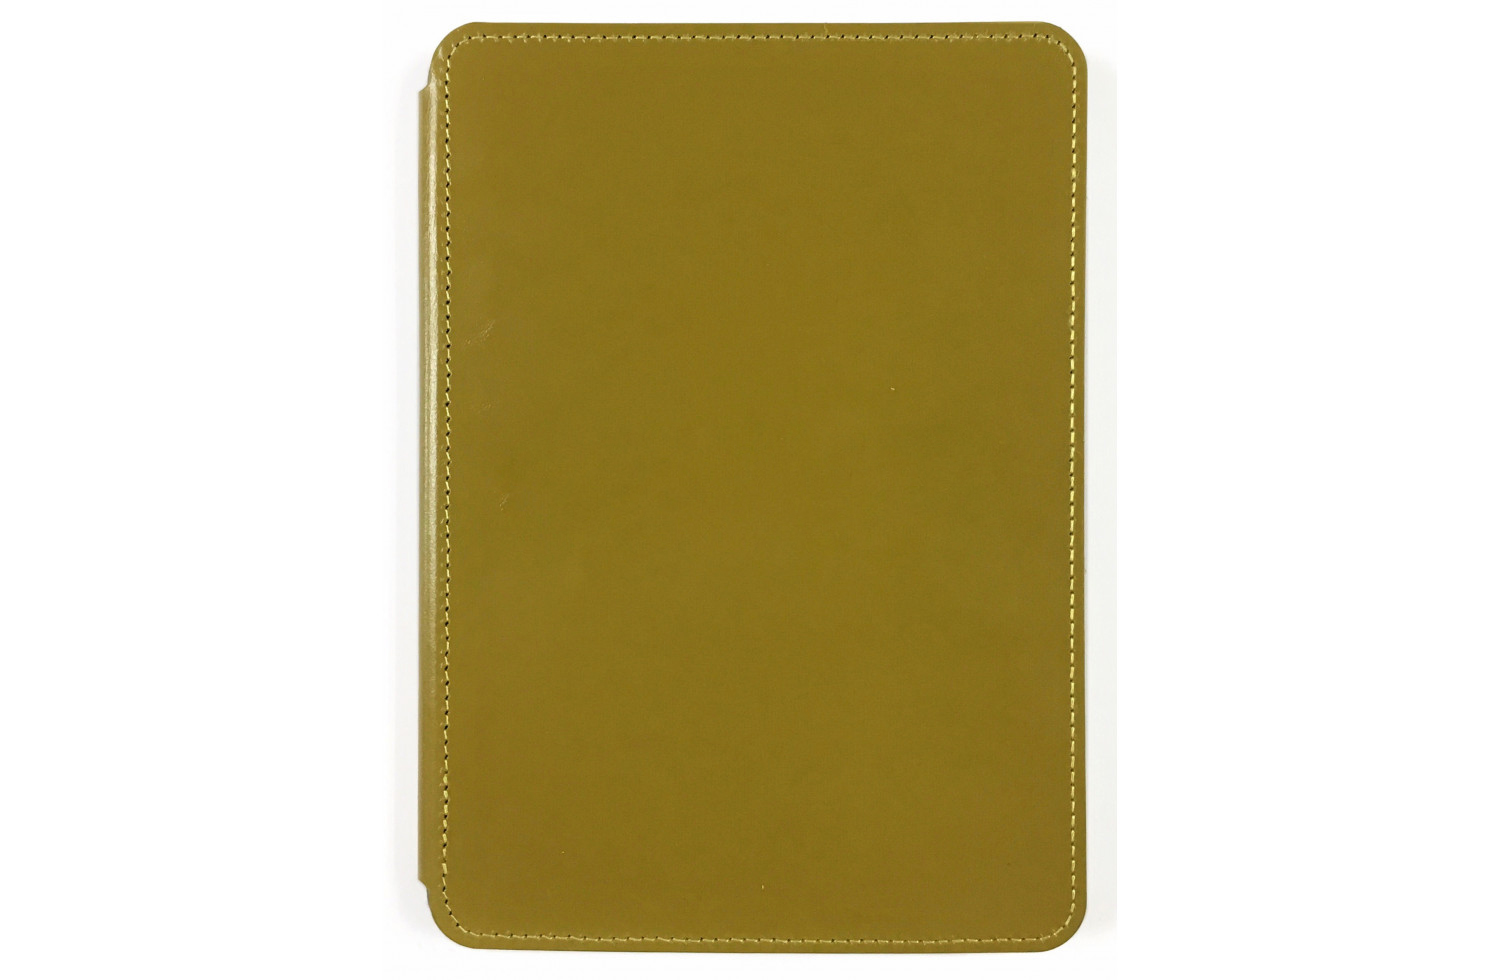 Чехол Amazon Kindle Touch Leather Cover Oliver Green чехол amazon kindle leather cover oliver green